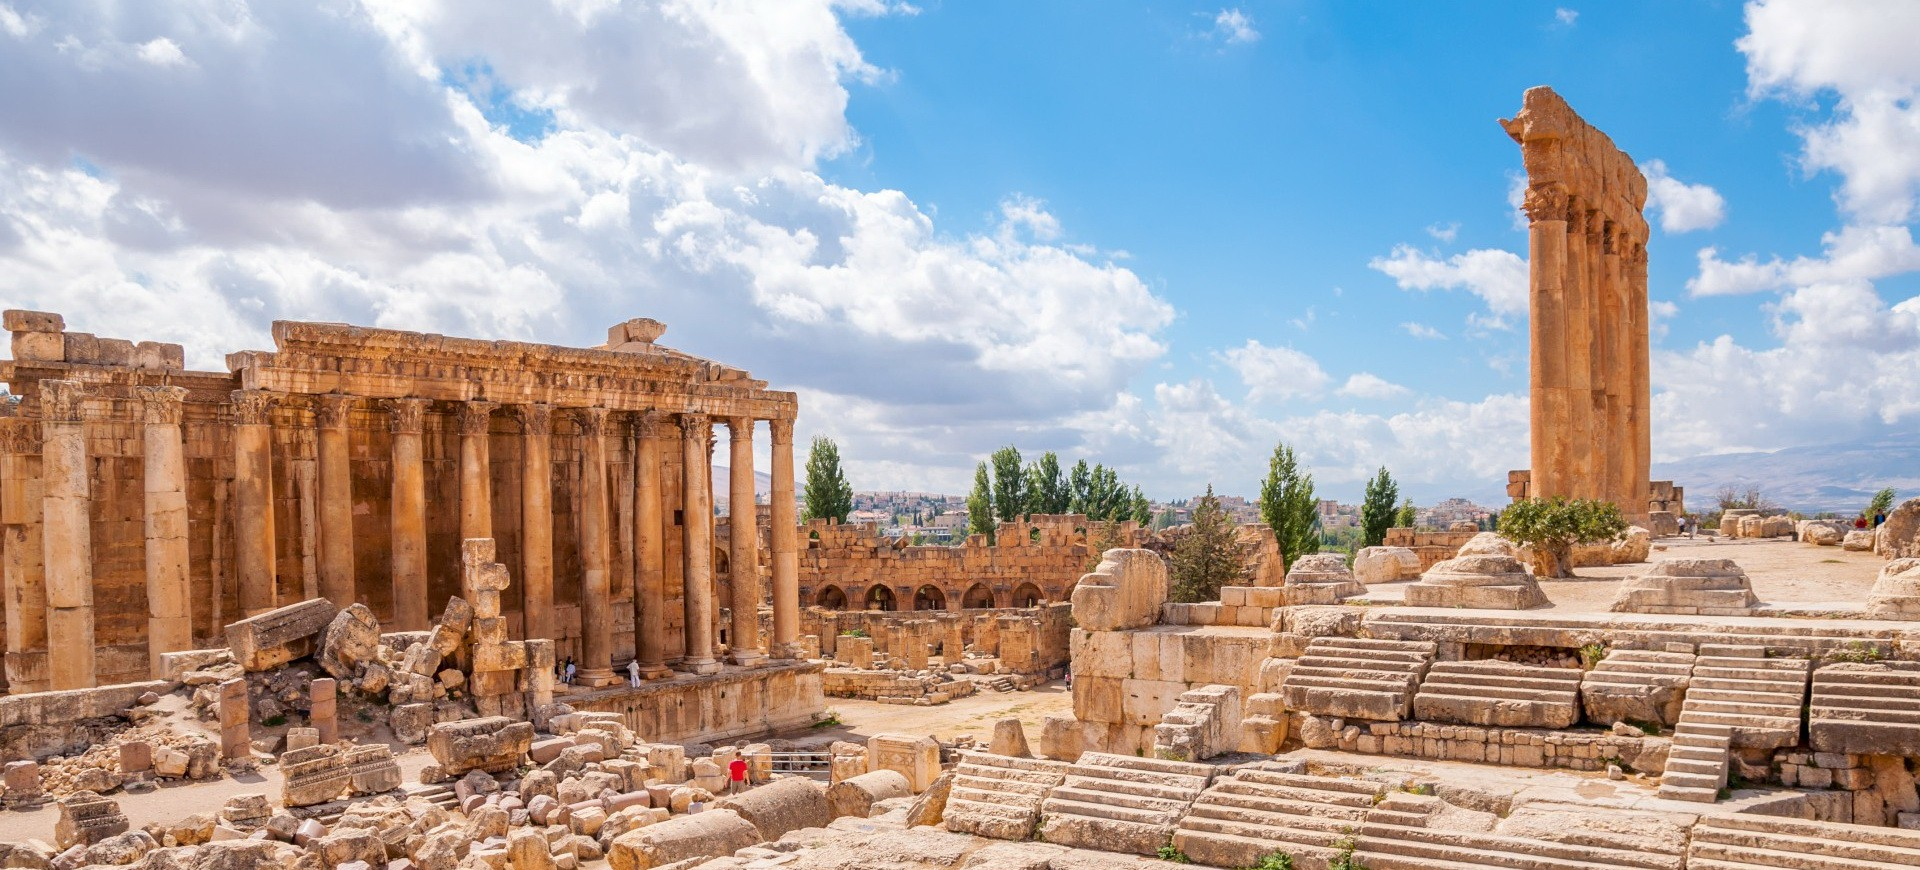 Liban Baalbeck site antique